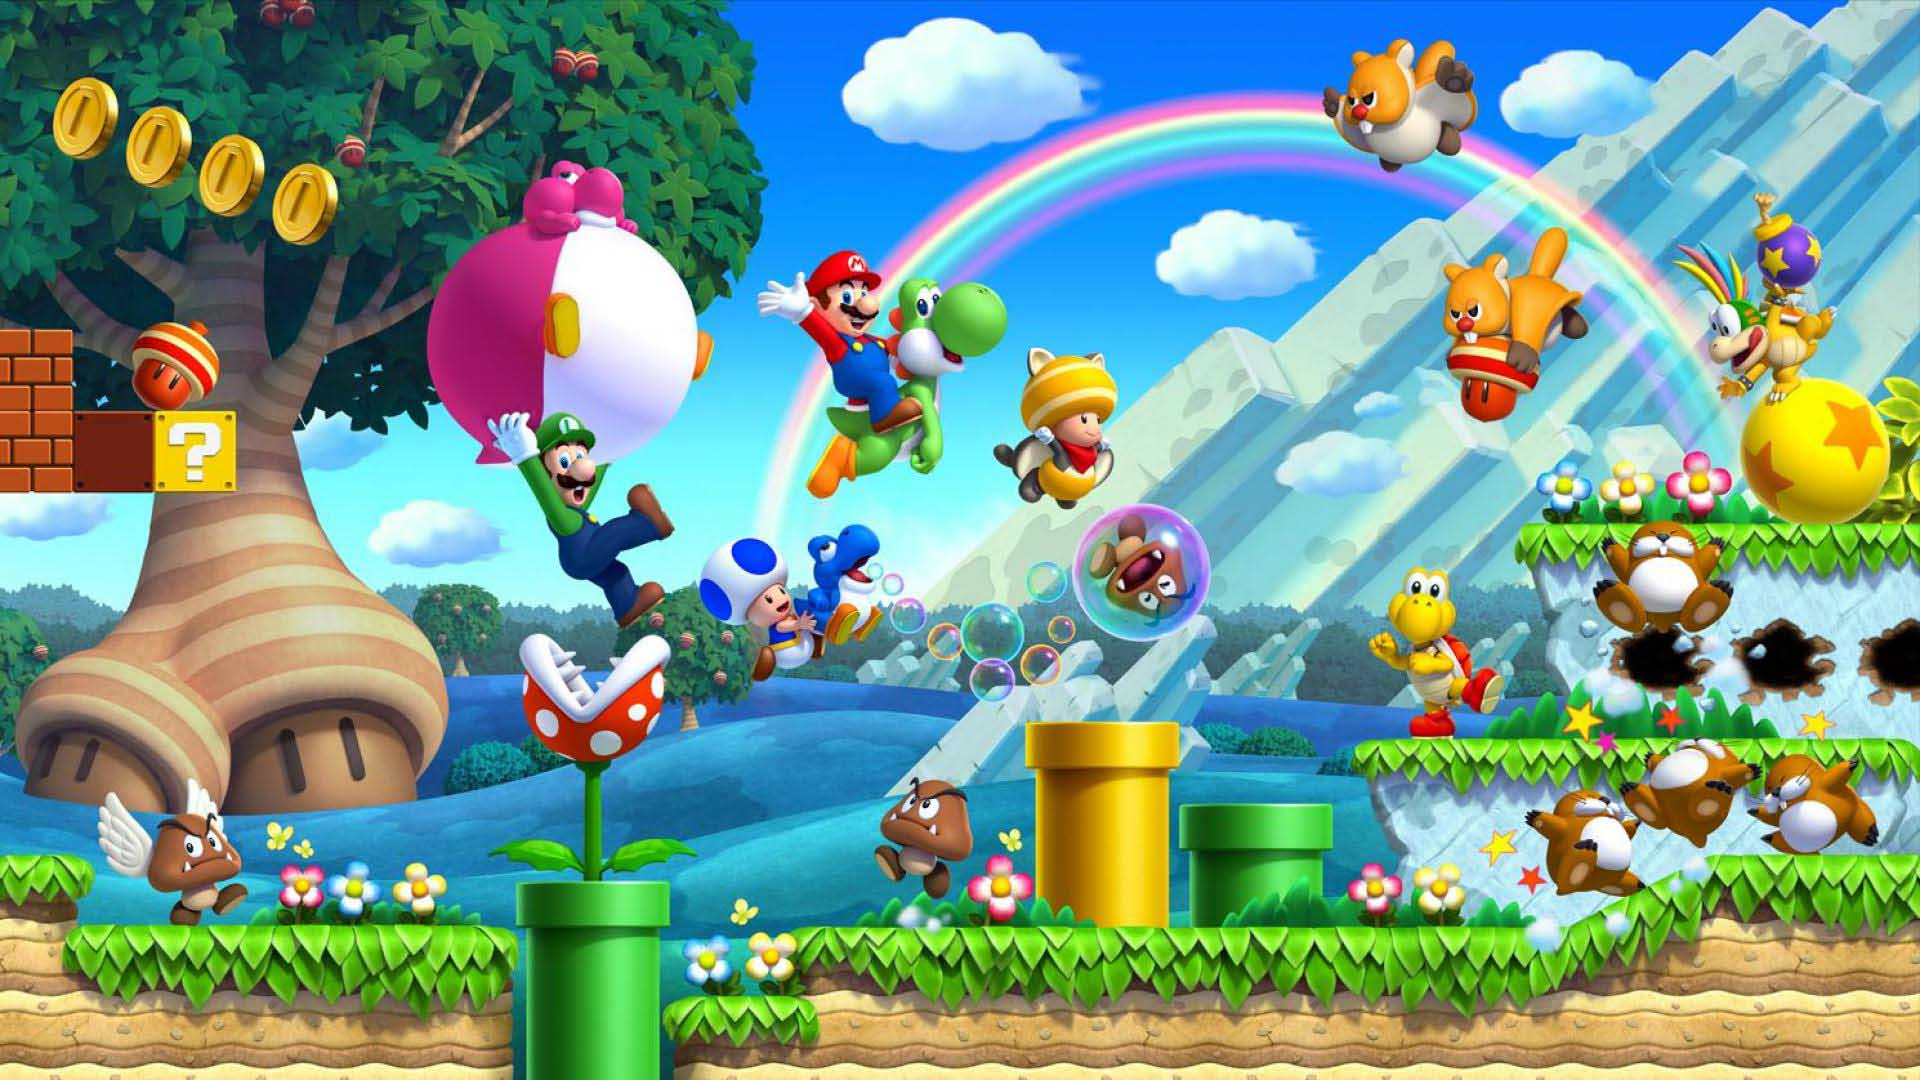 Free Download Most Popular And Colorful Game Mario Kart 8